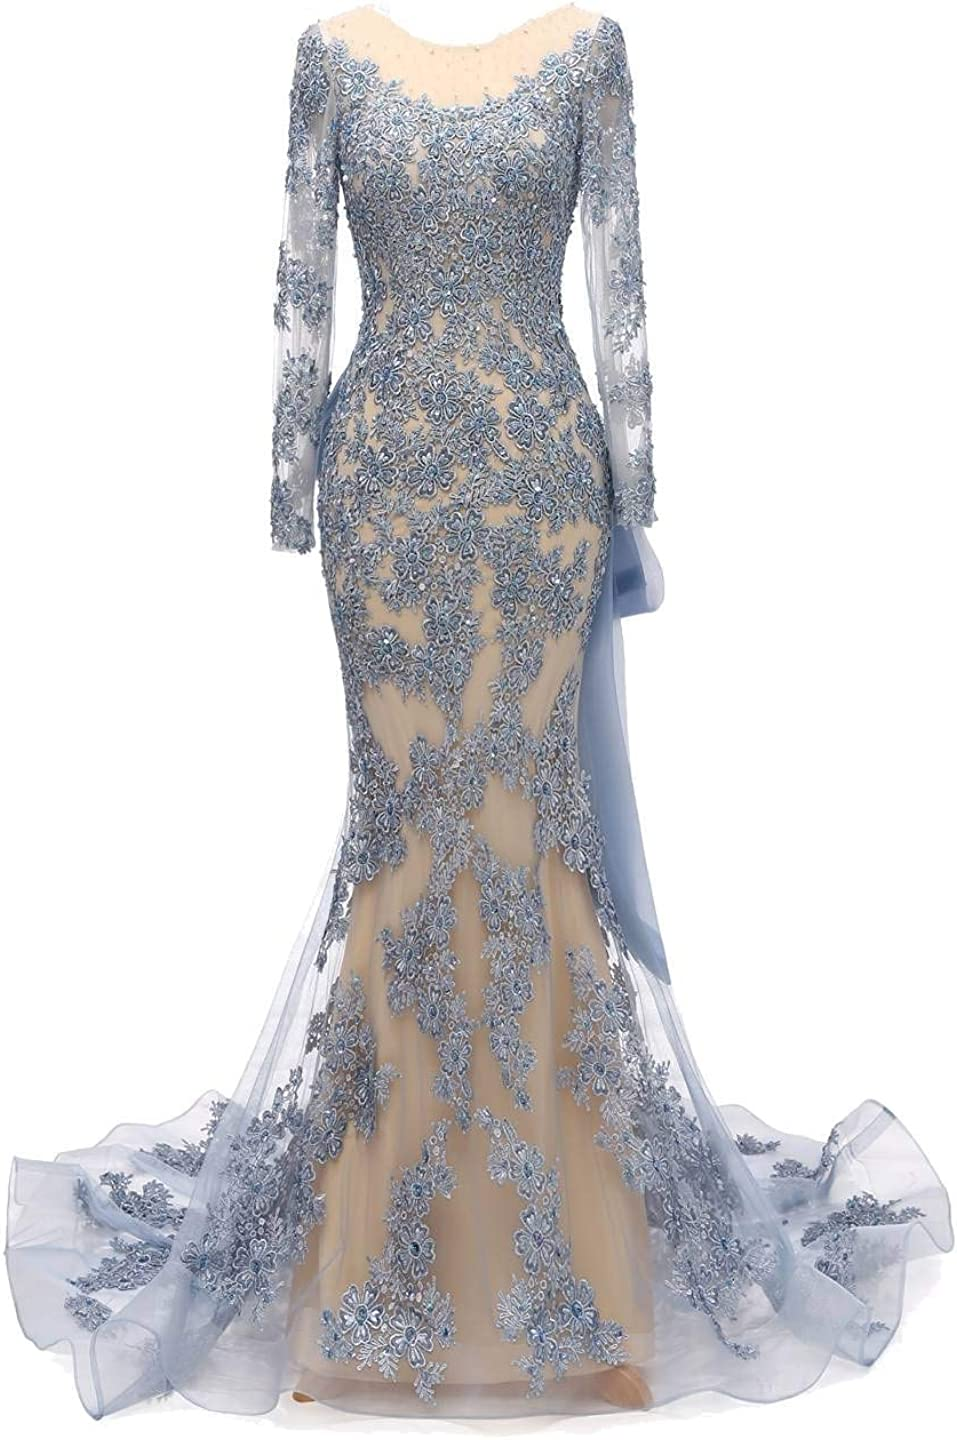 YINGJIABride Gorgeous Lace Mermaid Dres OFFicial store Formal Evening High order Reception